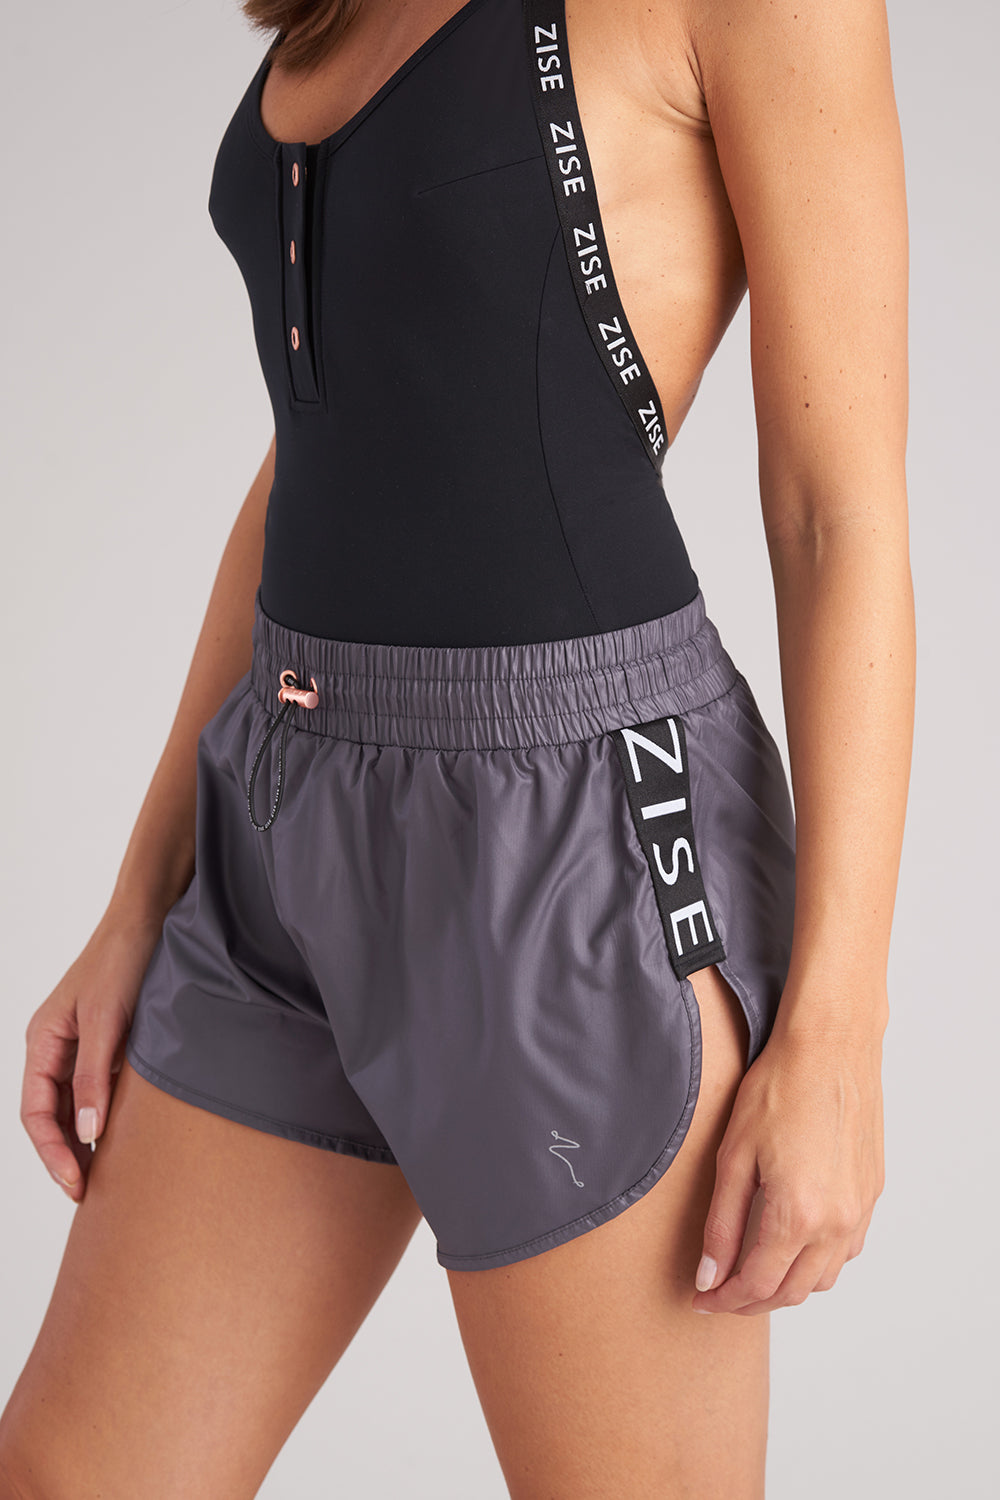 Zise Coco Ripstop Shorts